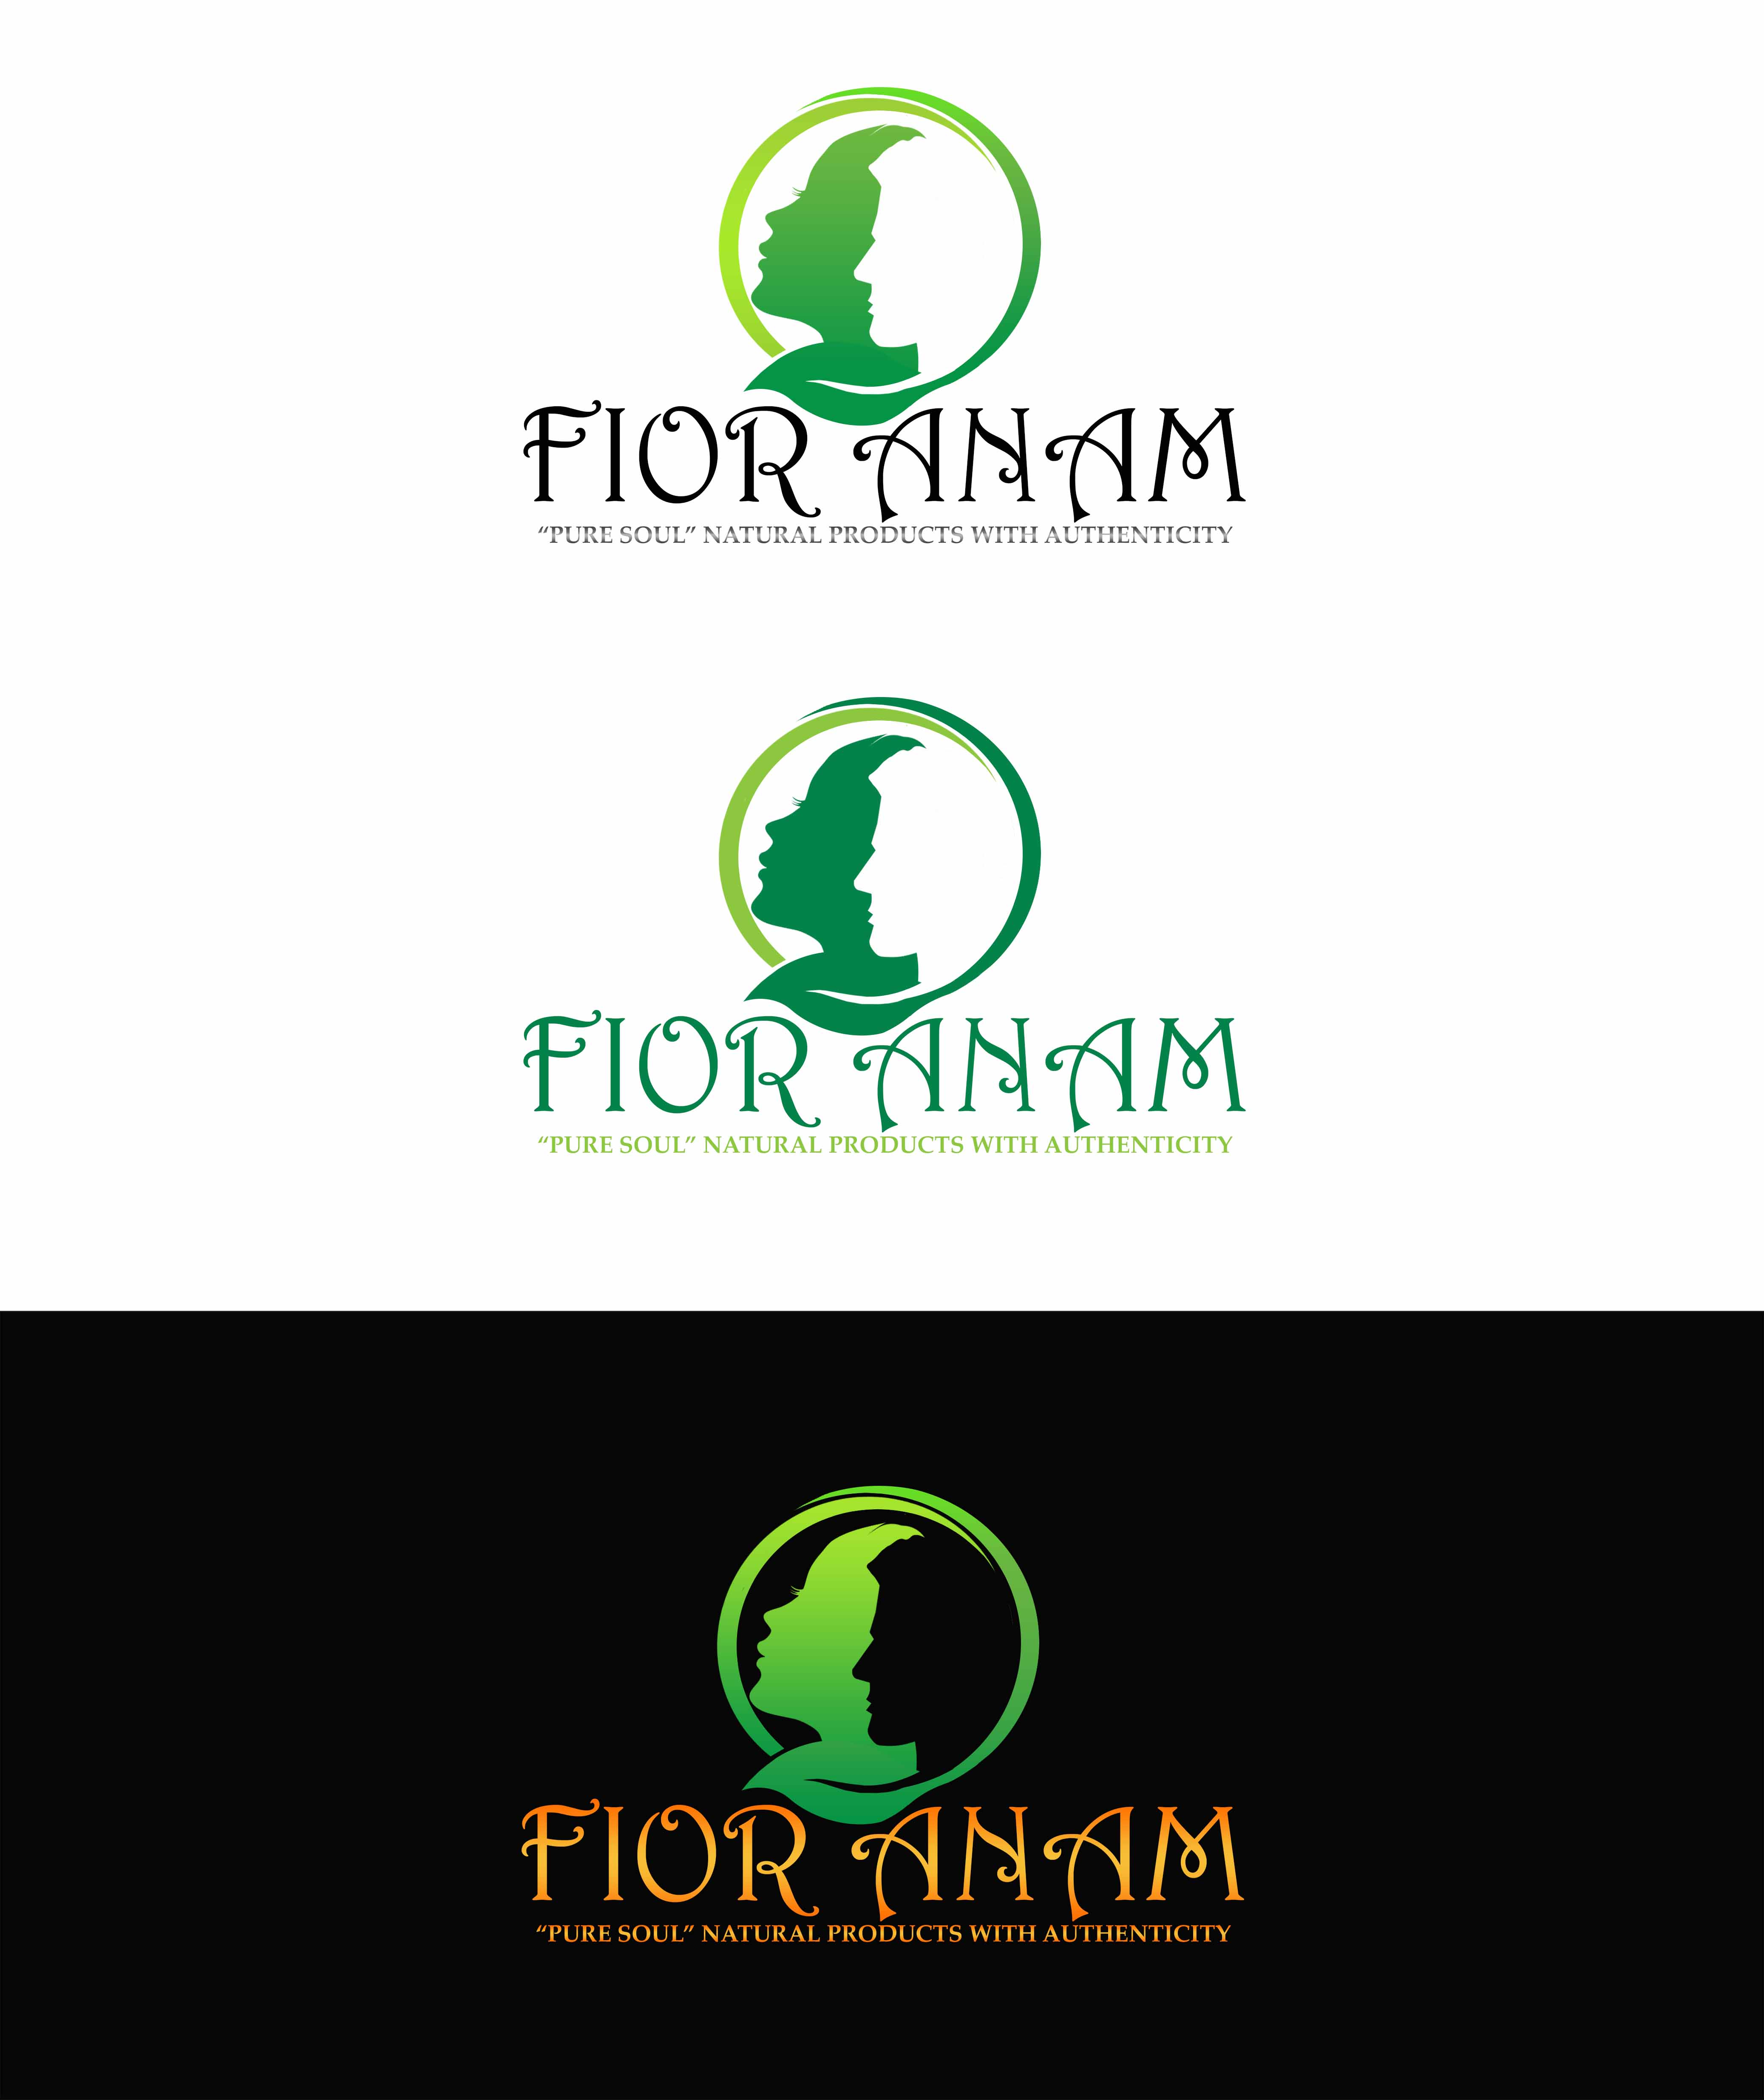 Logo Design by JSDESIGNGROUP - Entry No. 234 in the Logo Design Contest Creative Logo Design for Fior Anam.